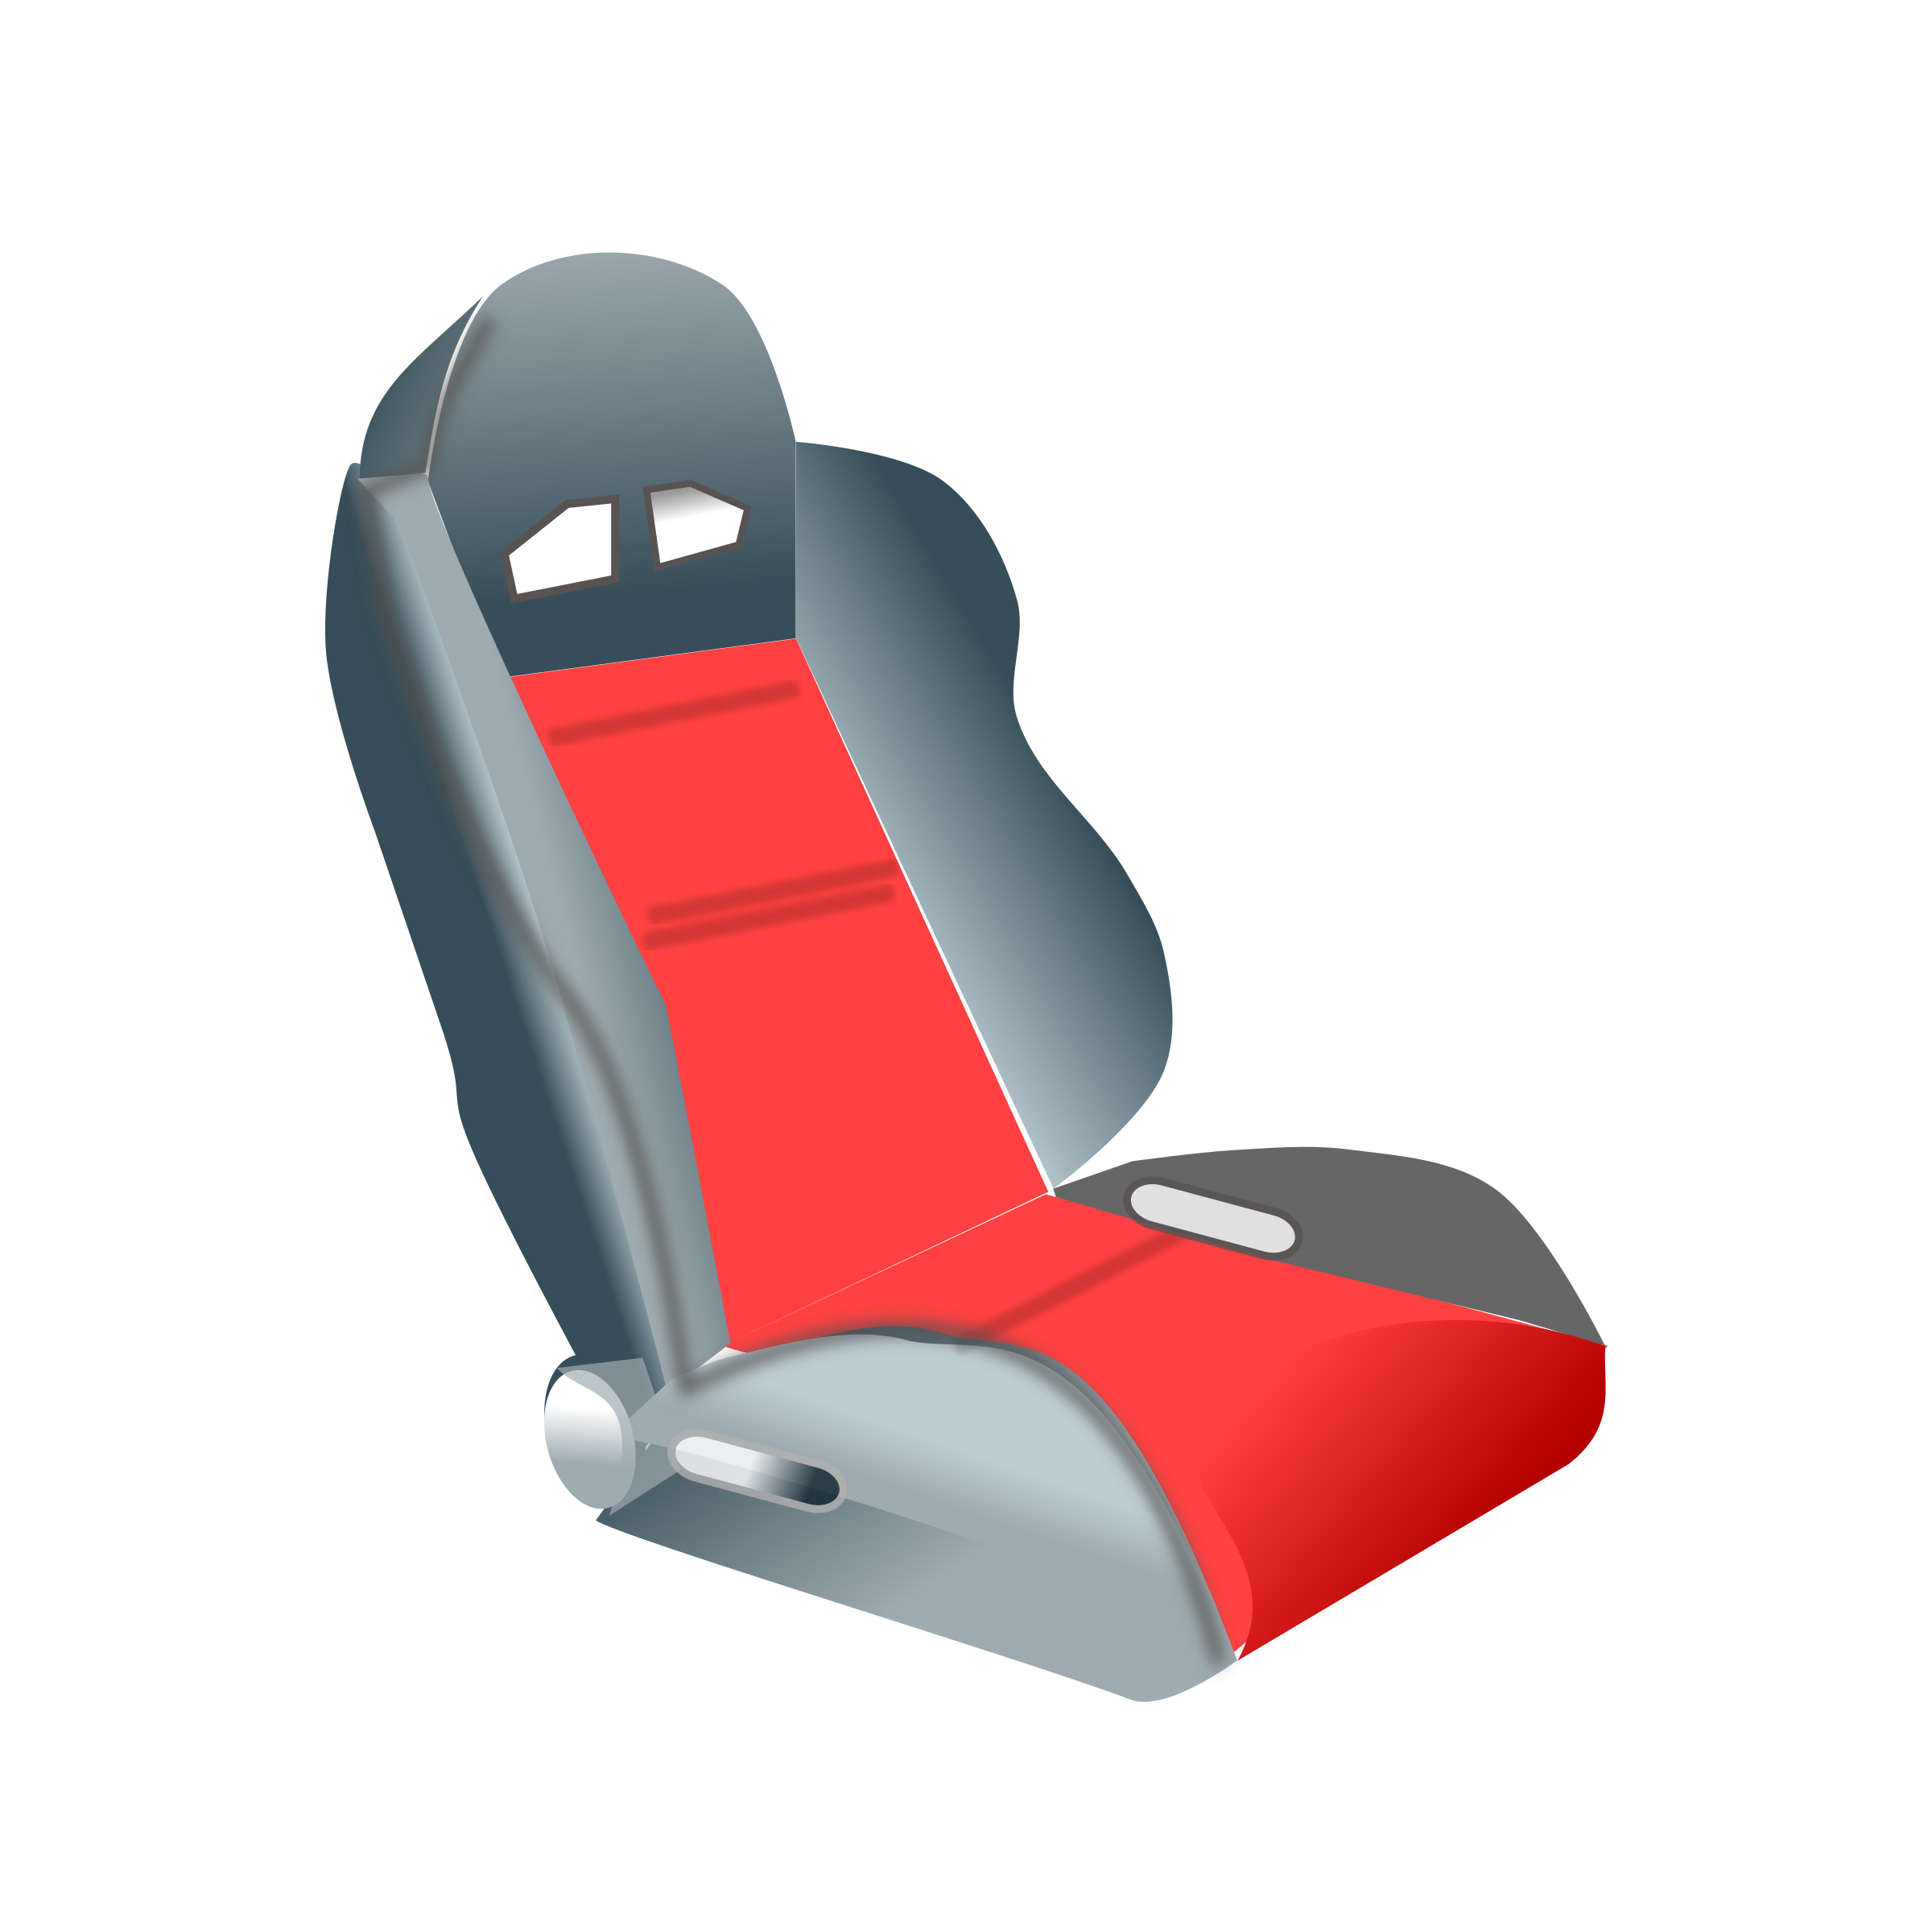 Clipart car seat clipart royalty free download Clipart - racing seat clipart royalty free download